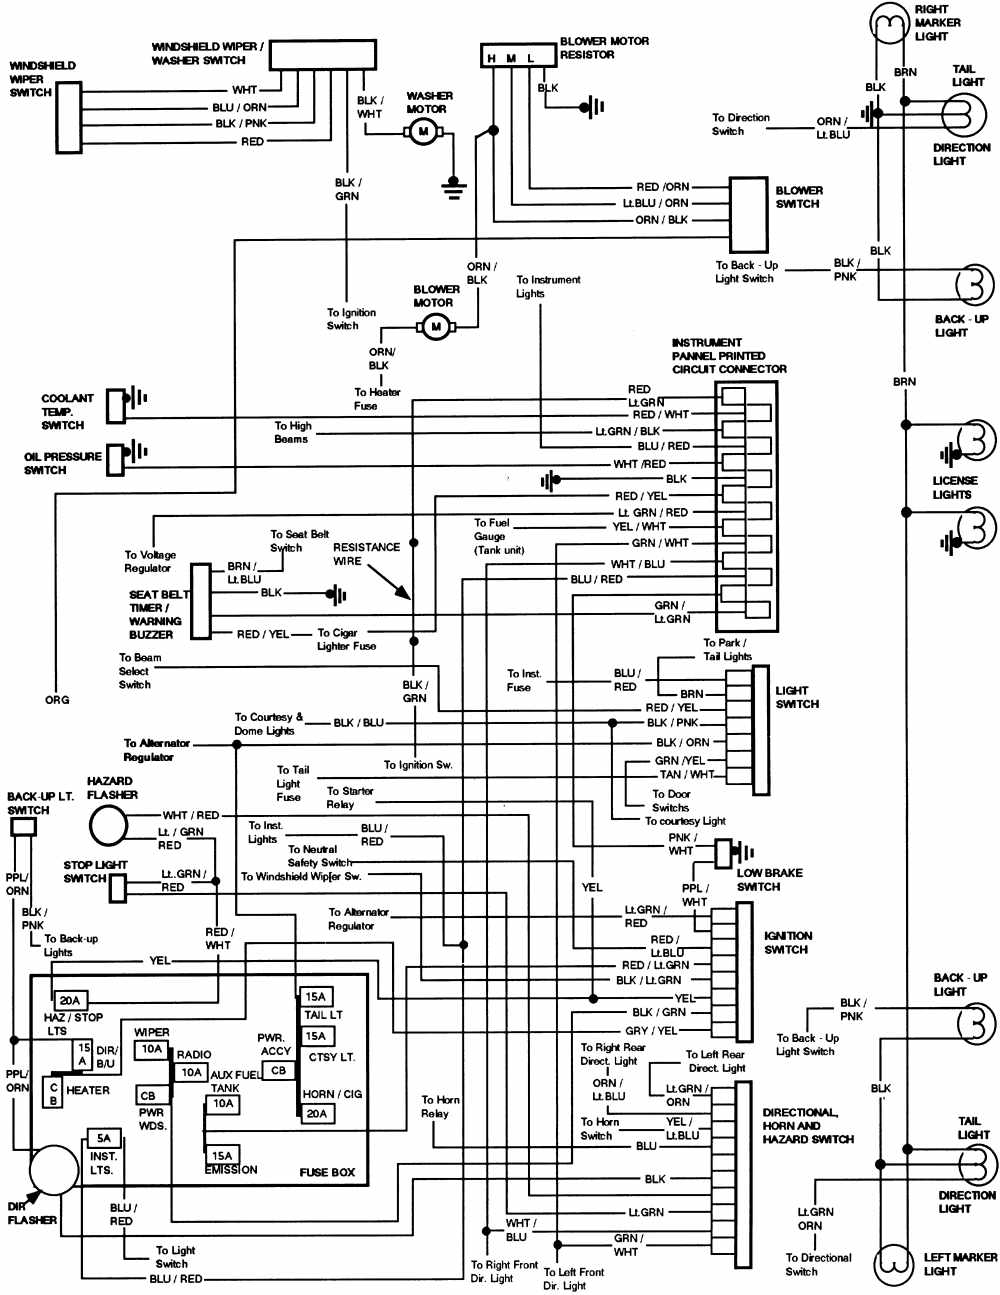 86 ford bronco radio wiring diagram ford bronco 1984 instrument panel wiring diagram | all ... 1989 ford bronco radio wiring diagram #10